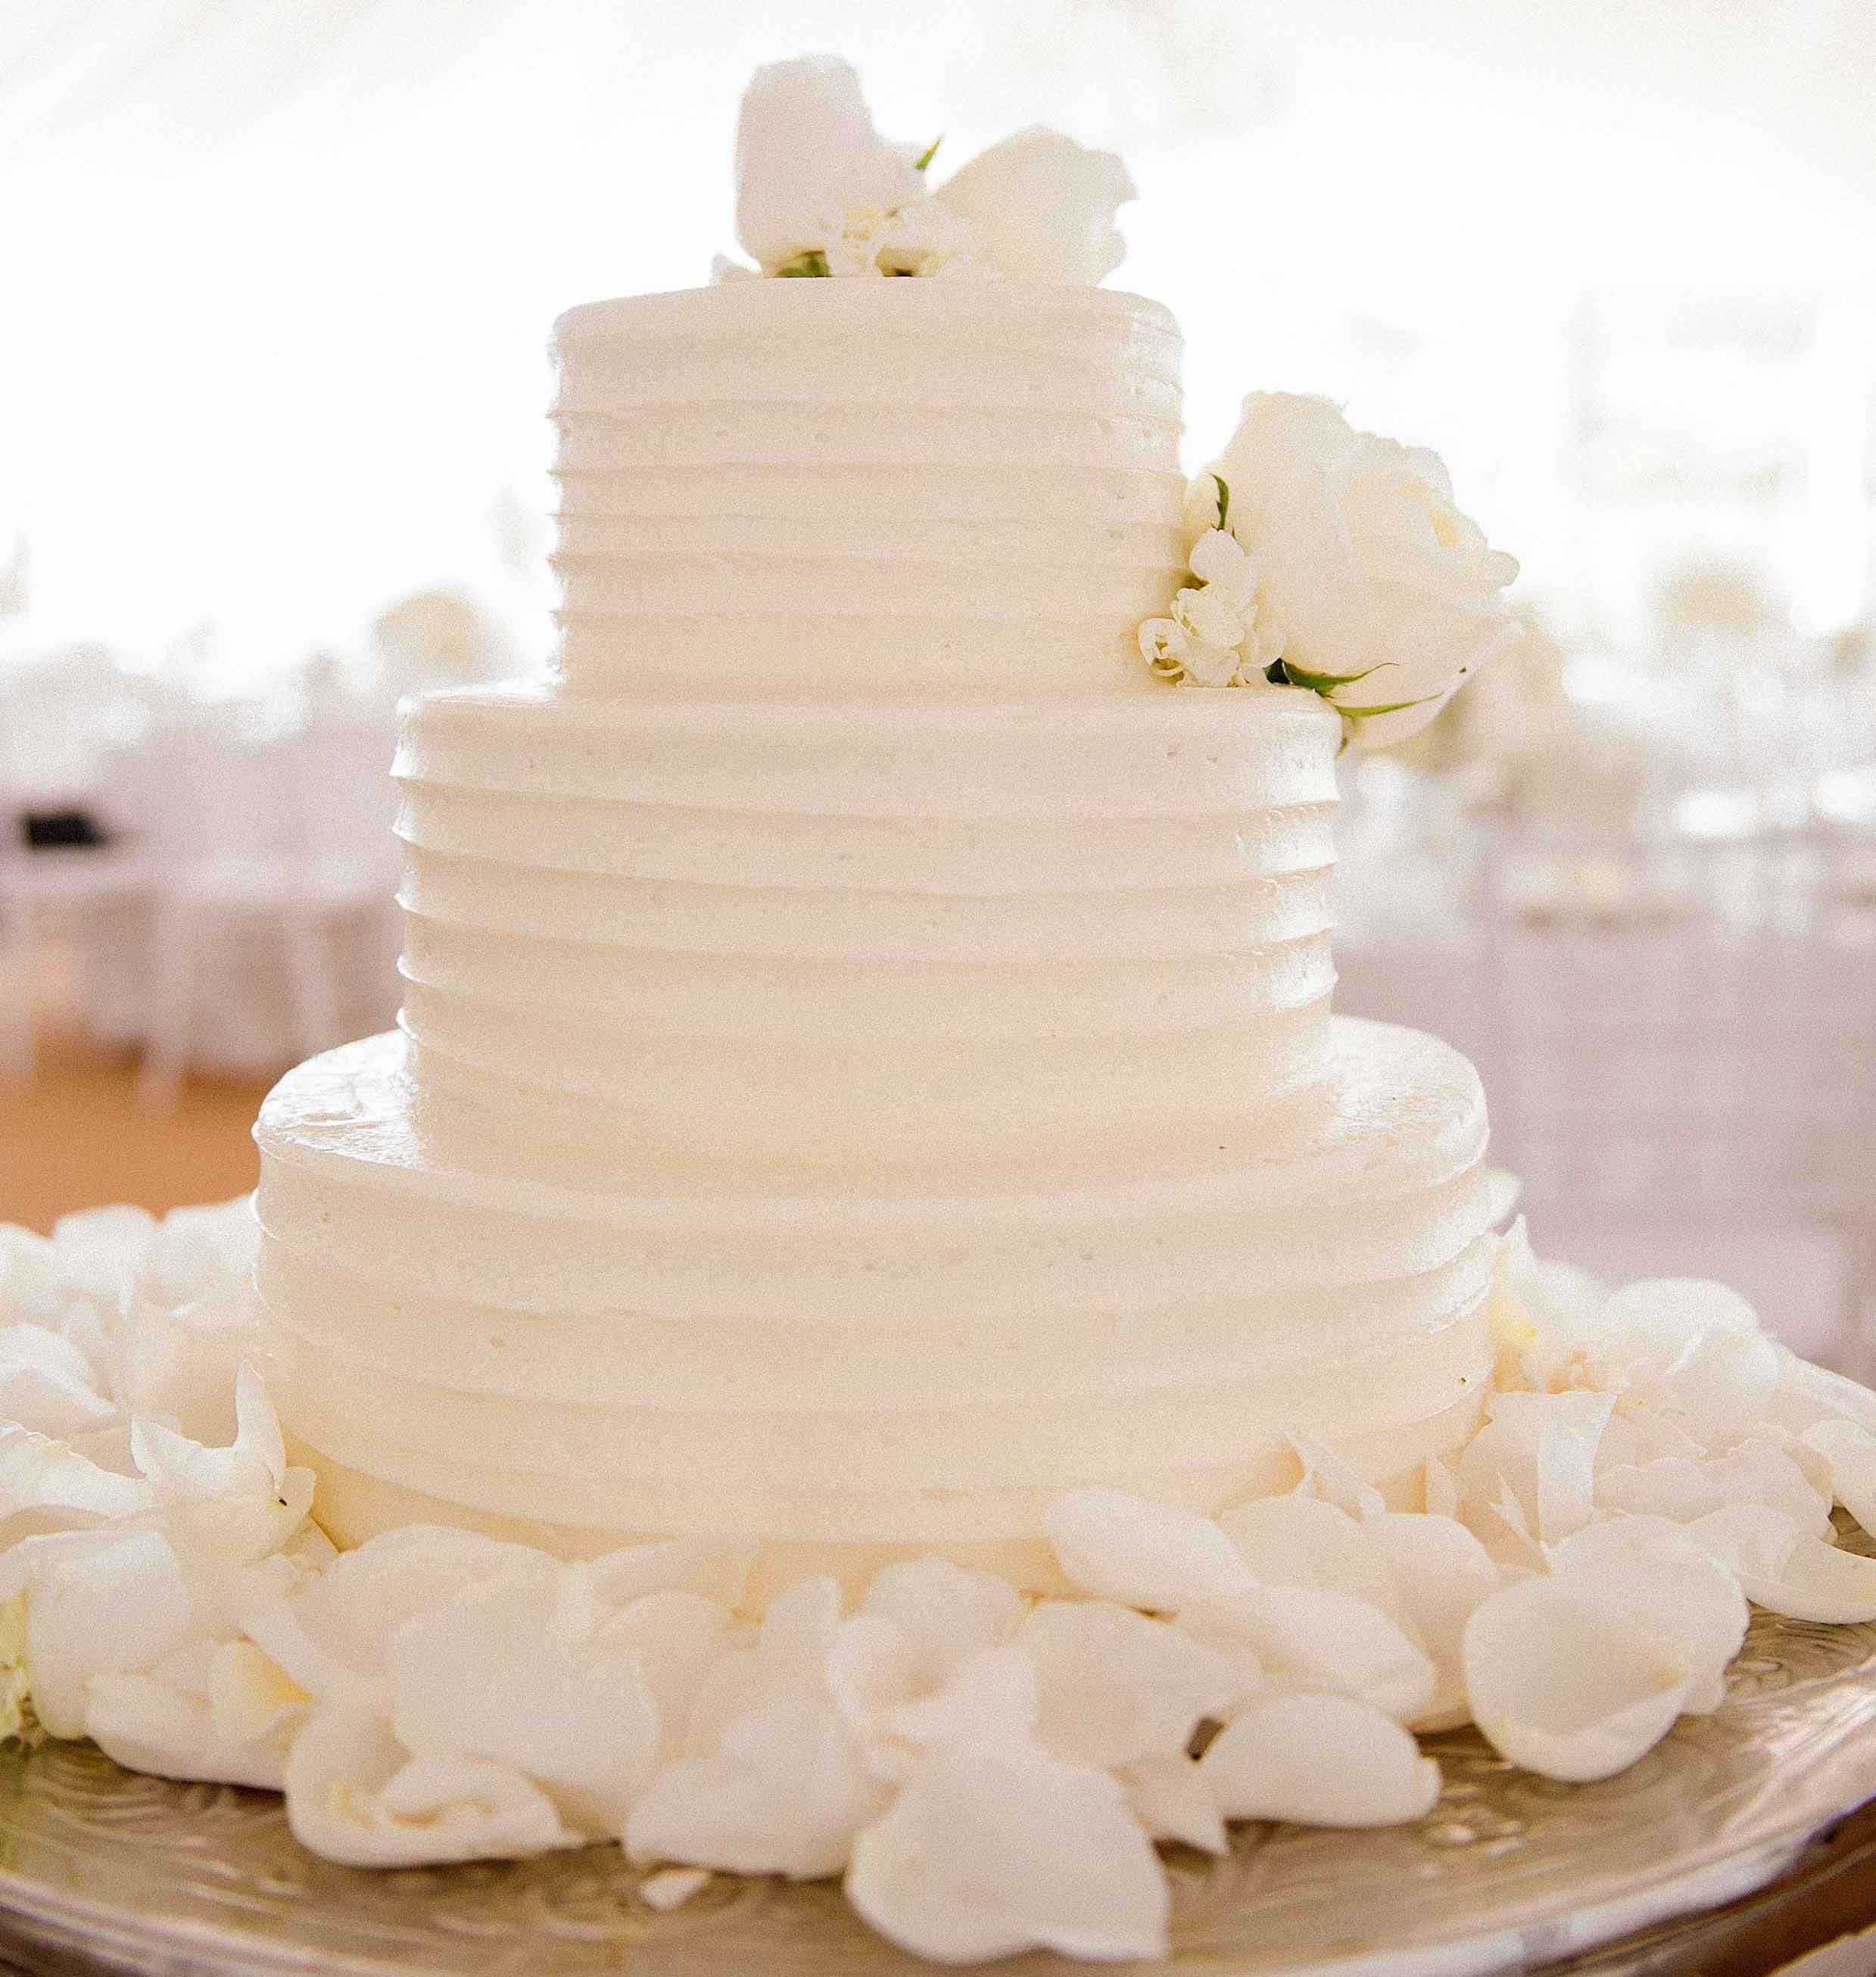 White wedding cake with ridges